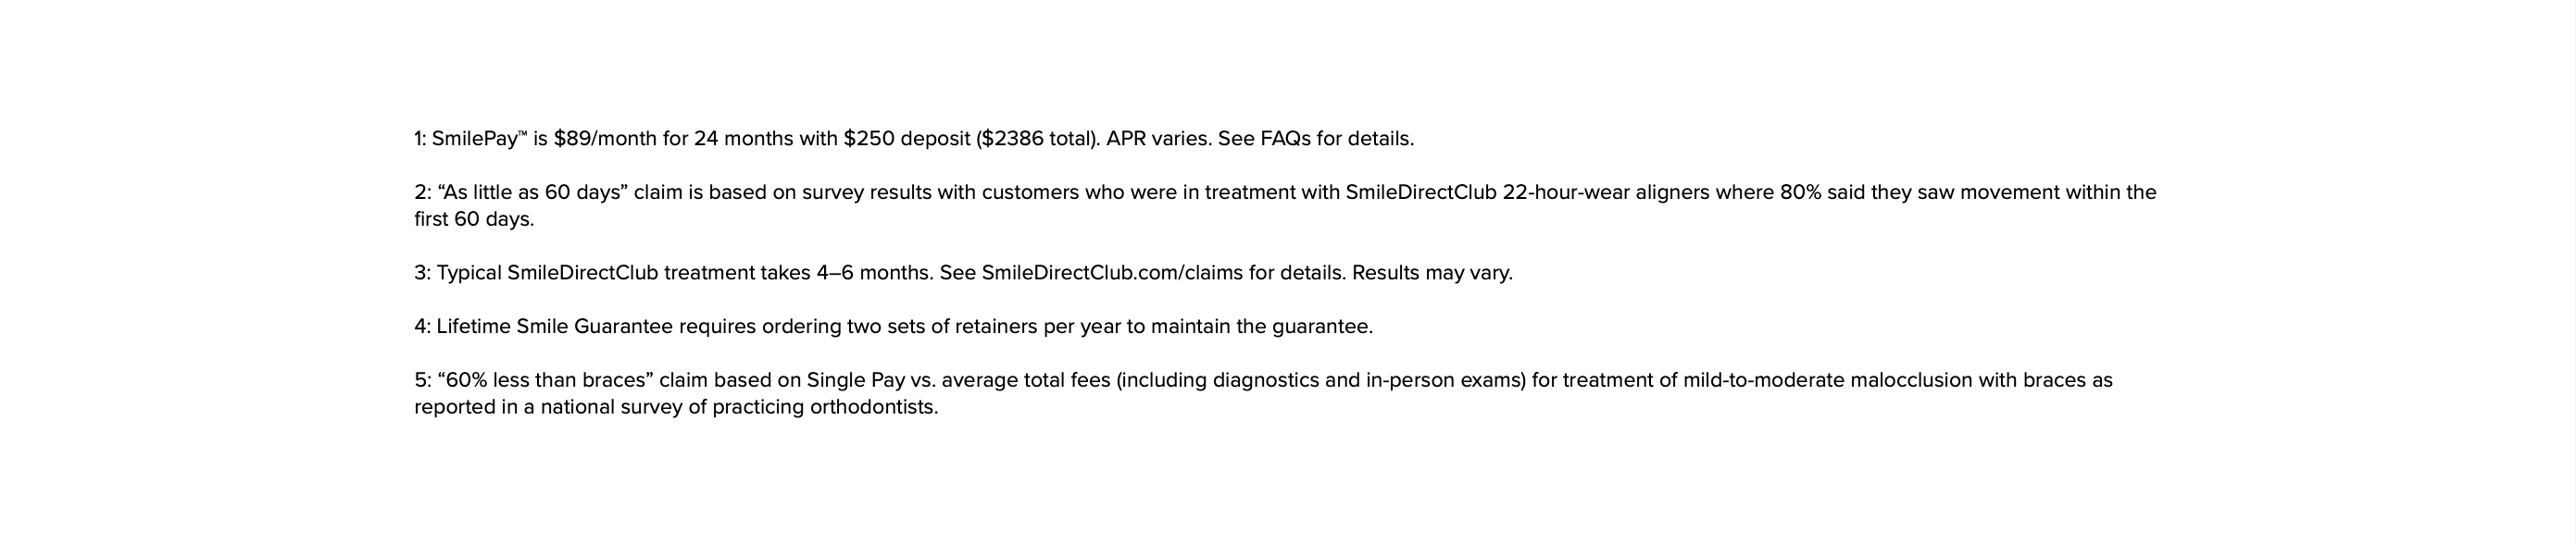 Terms and Conditions, SmileDirectClub